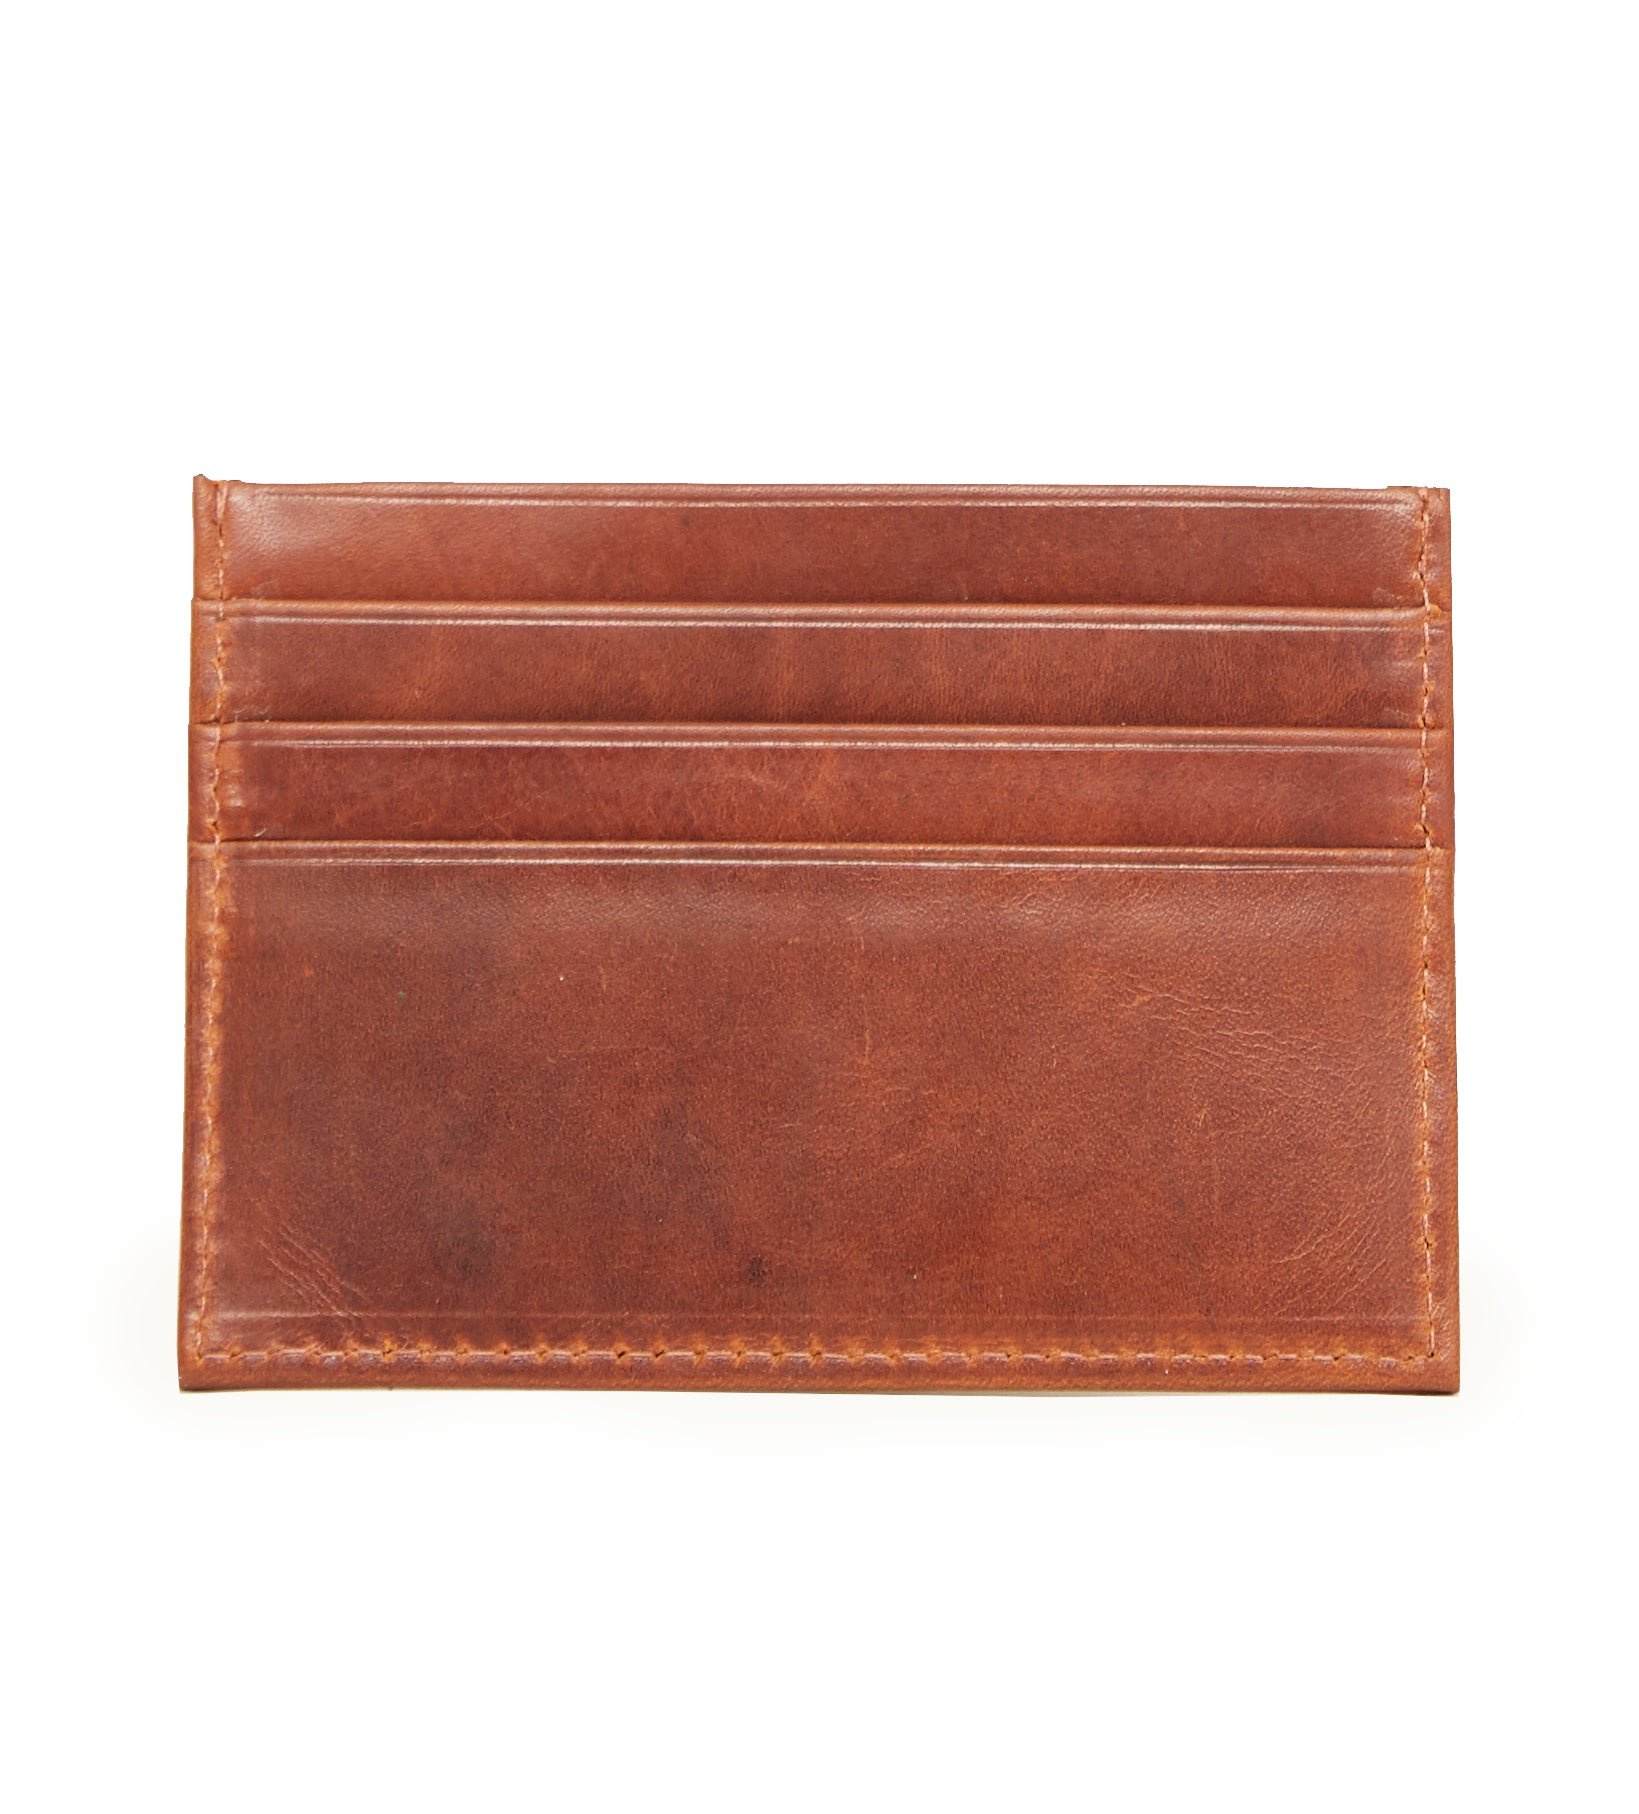 Hicks and Hides Leather Card Holder in Cognac